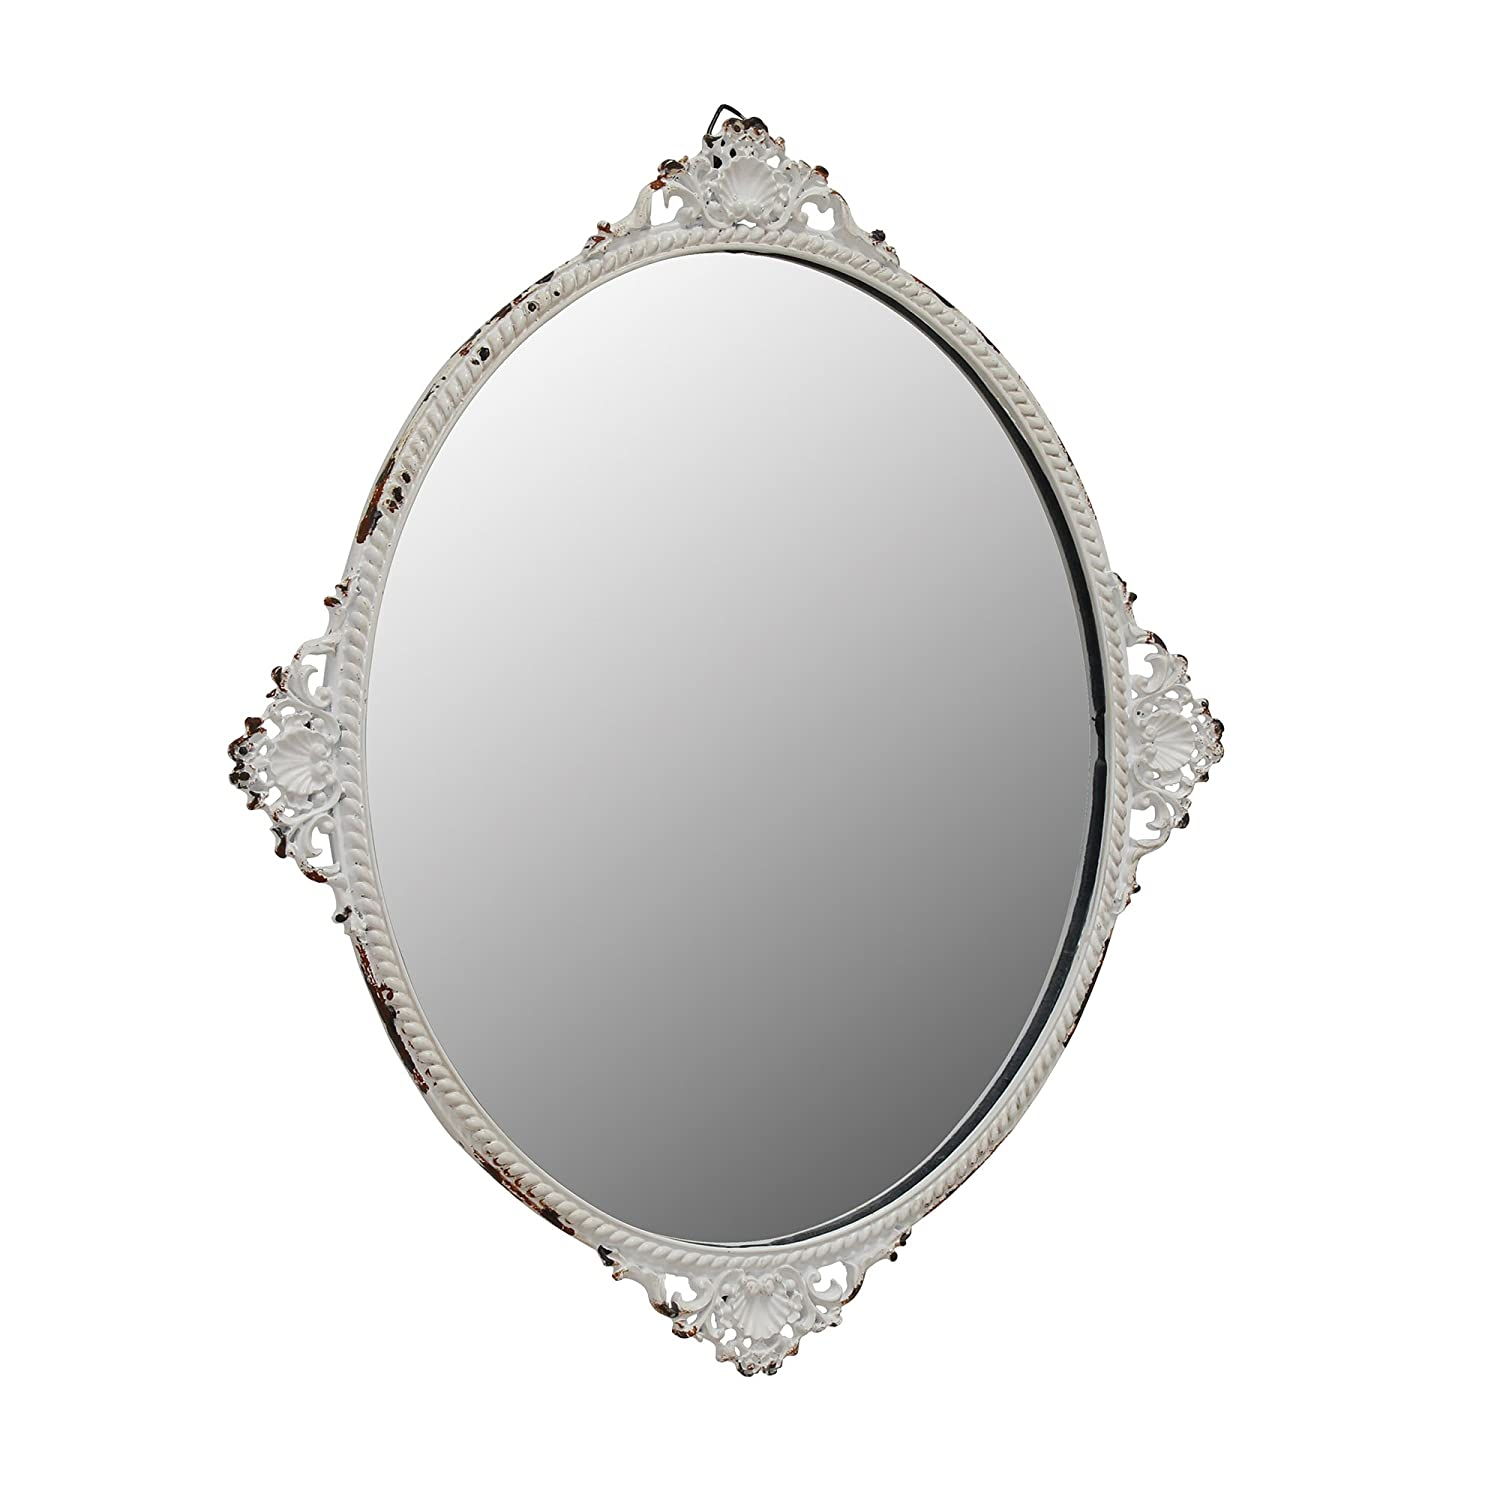 Stonebriar Decorative Oval Antique White Metal Wall Mirror, Vintage Home Décor for Living Room, Kitchen, Bedroom, or Hallway, French Country Decor, For Table Top or Wall Hanging Display CKK Home Décor SB-6081M